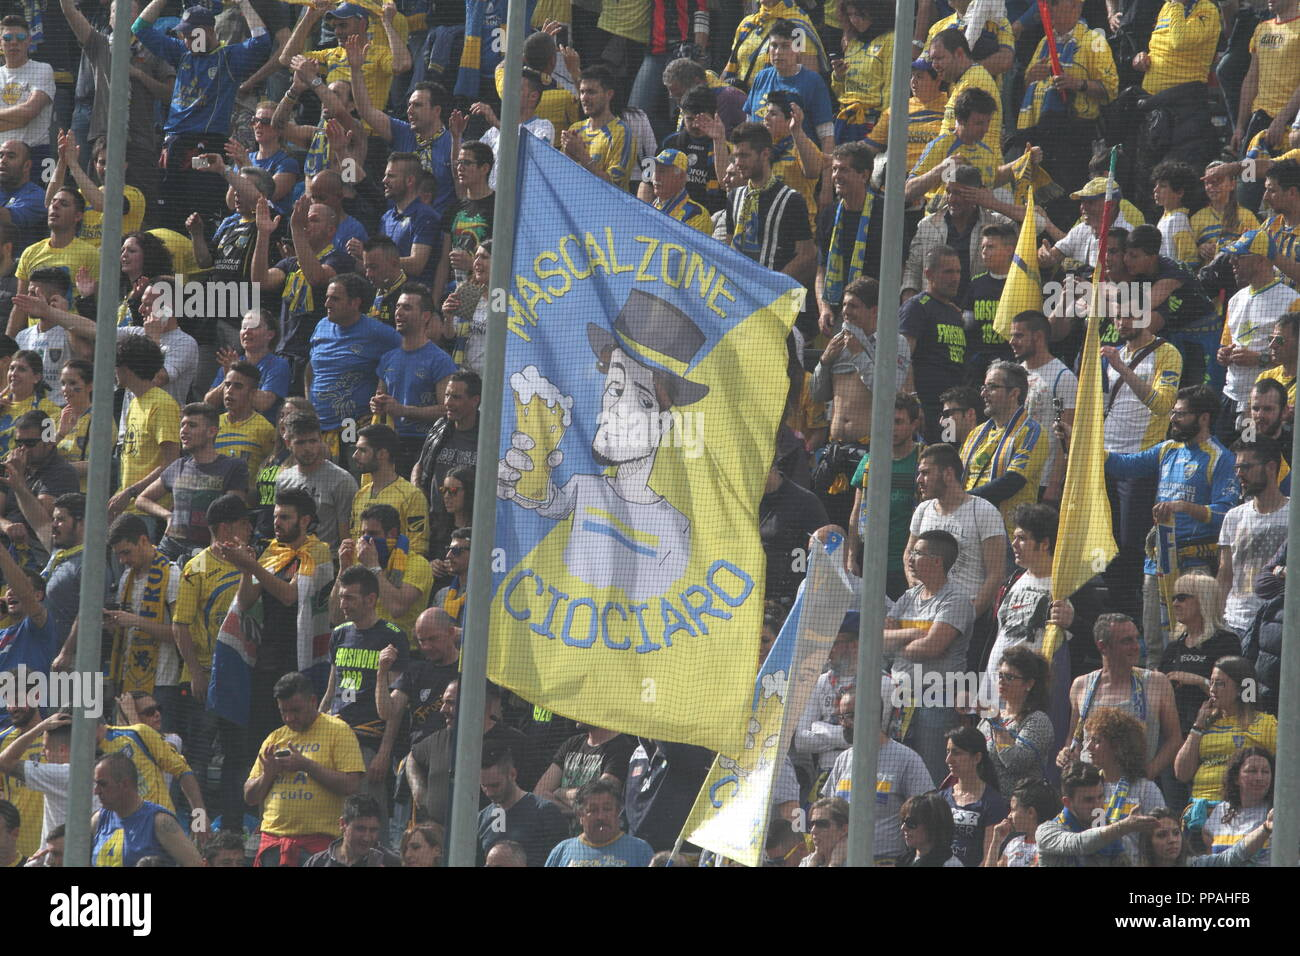 Frosinone / Italy - May 16, 2015: Canary fans at the stadium in the match that will promote the team in Serie A - Stock Image